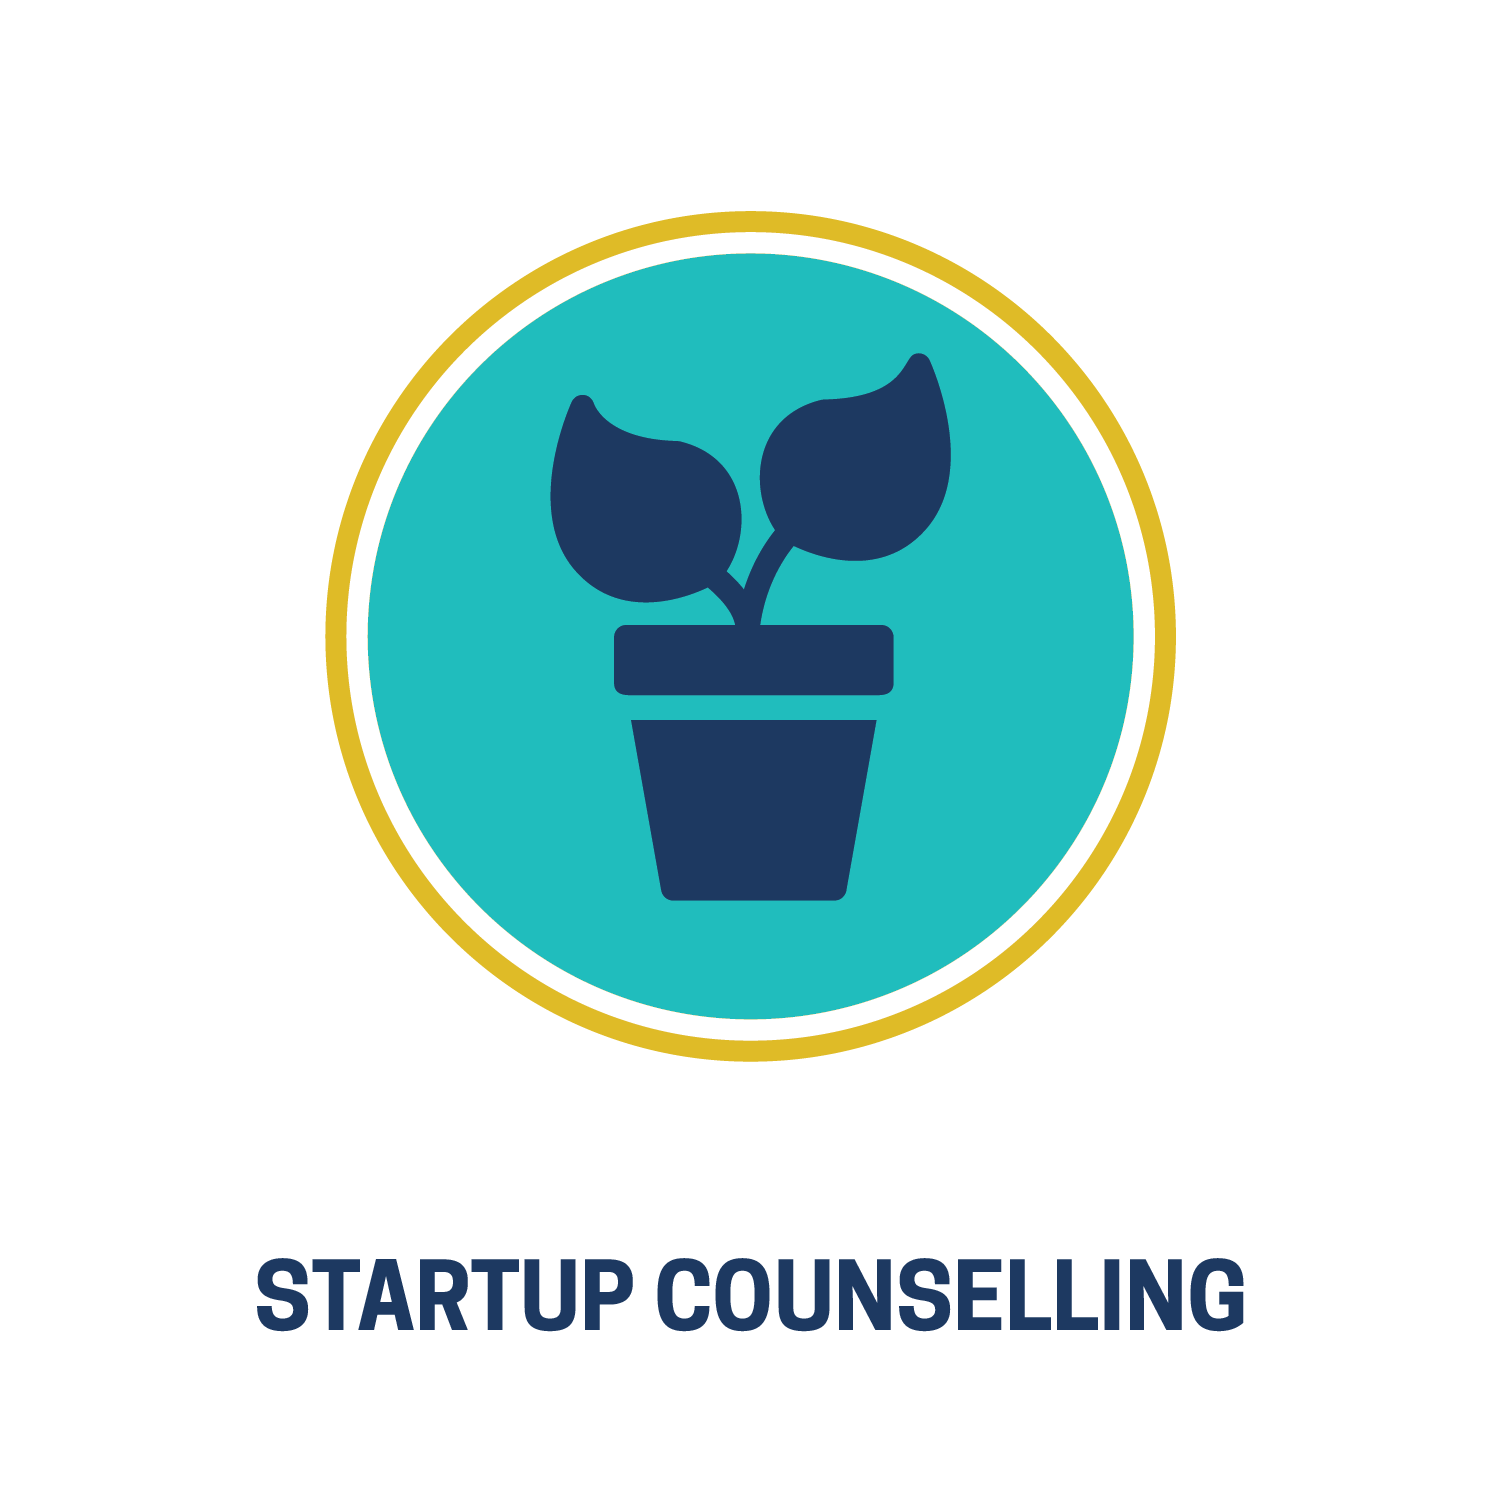 Icons_Startup Counselling.png